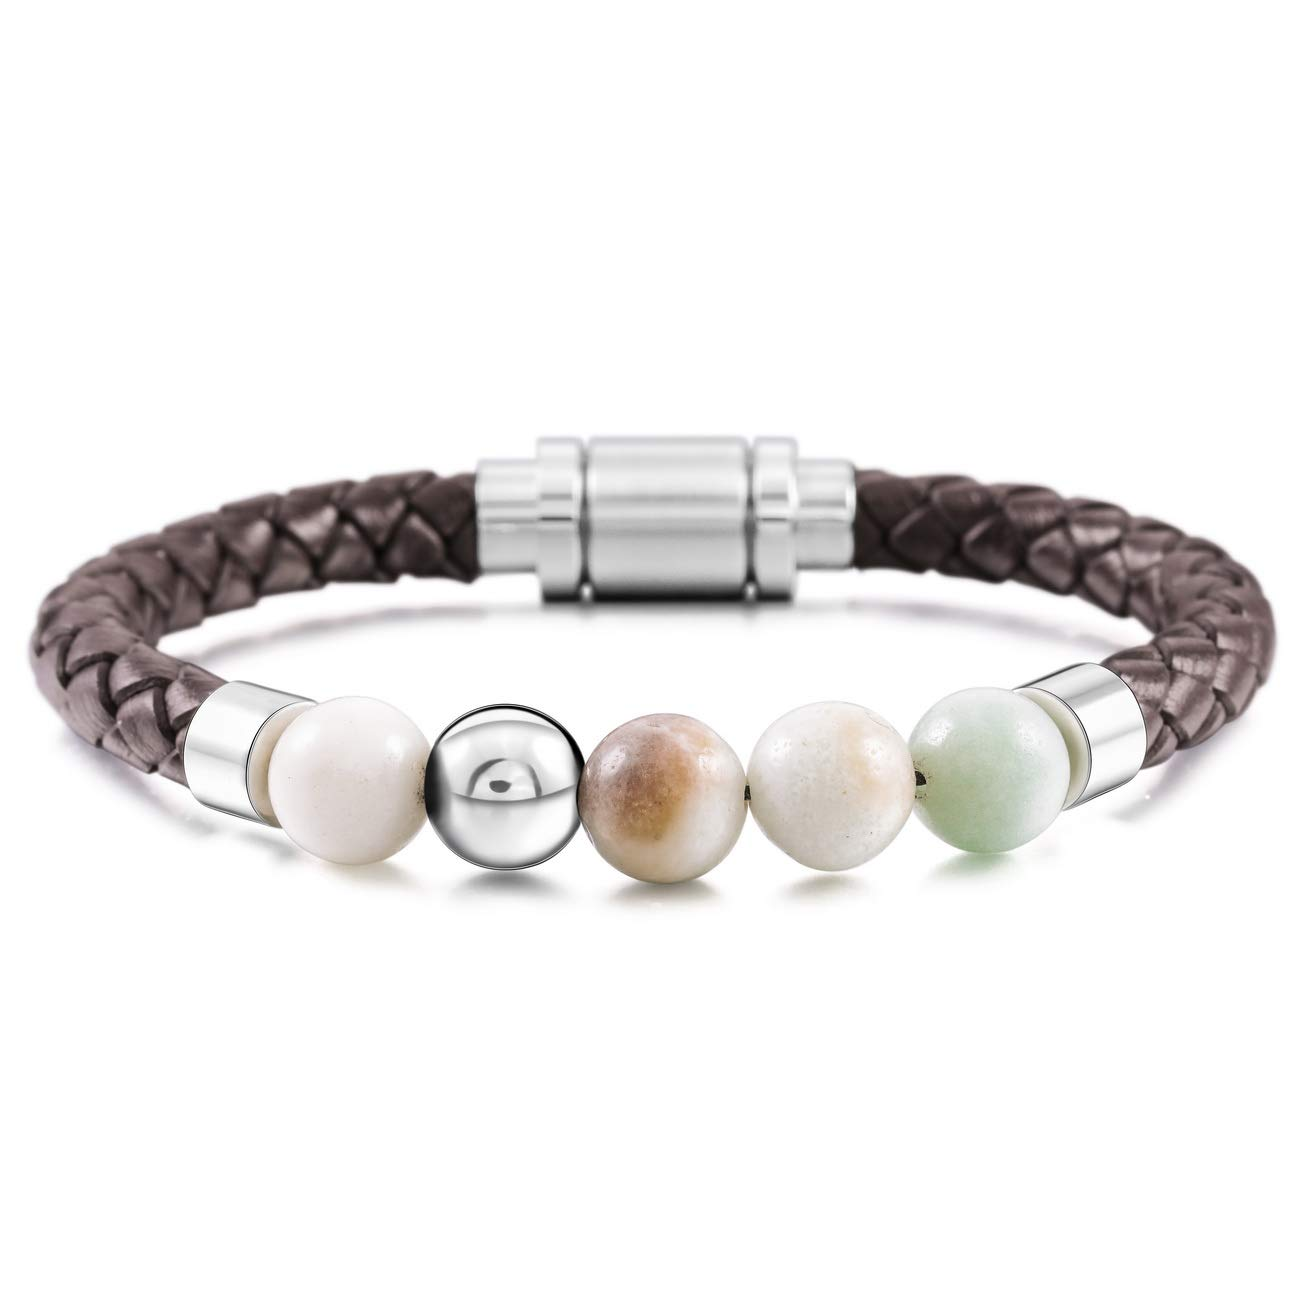 MOWOM Silver Tone Brown Stainless Steel Genuine Leather Energy Bracelet Simulated Stone Bead Magnetic Clasp ca5020368